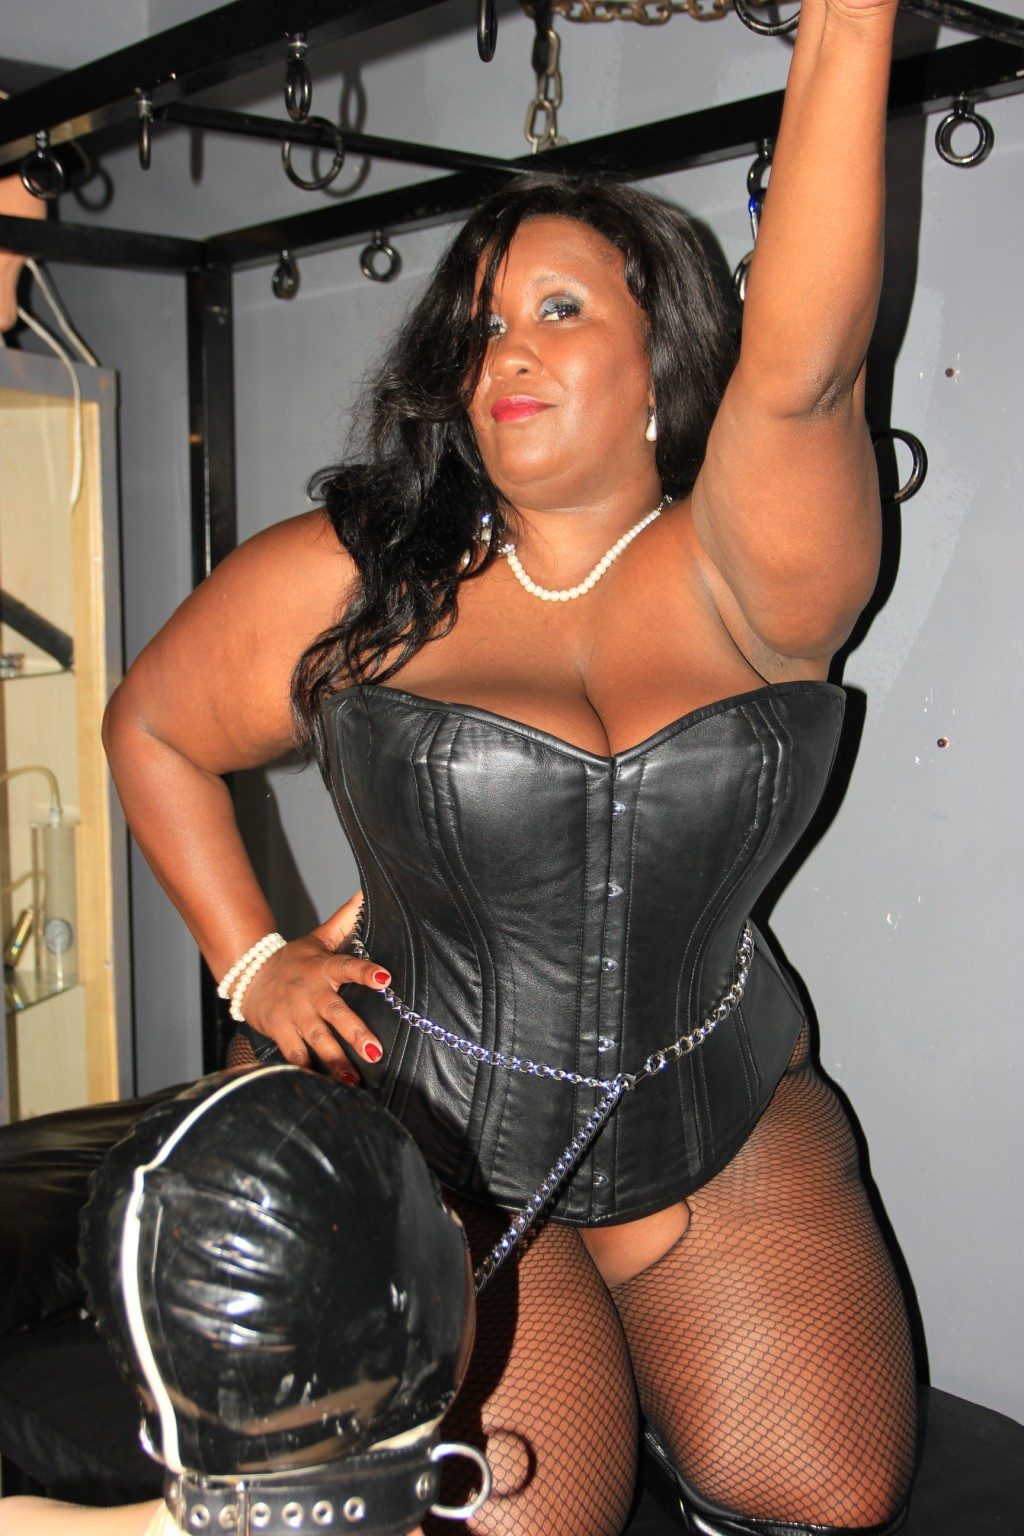 dominatrix auckland bbw escort agency